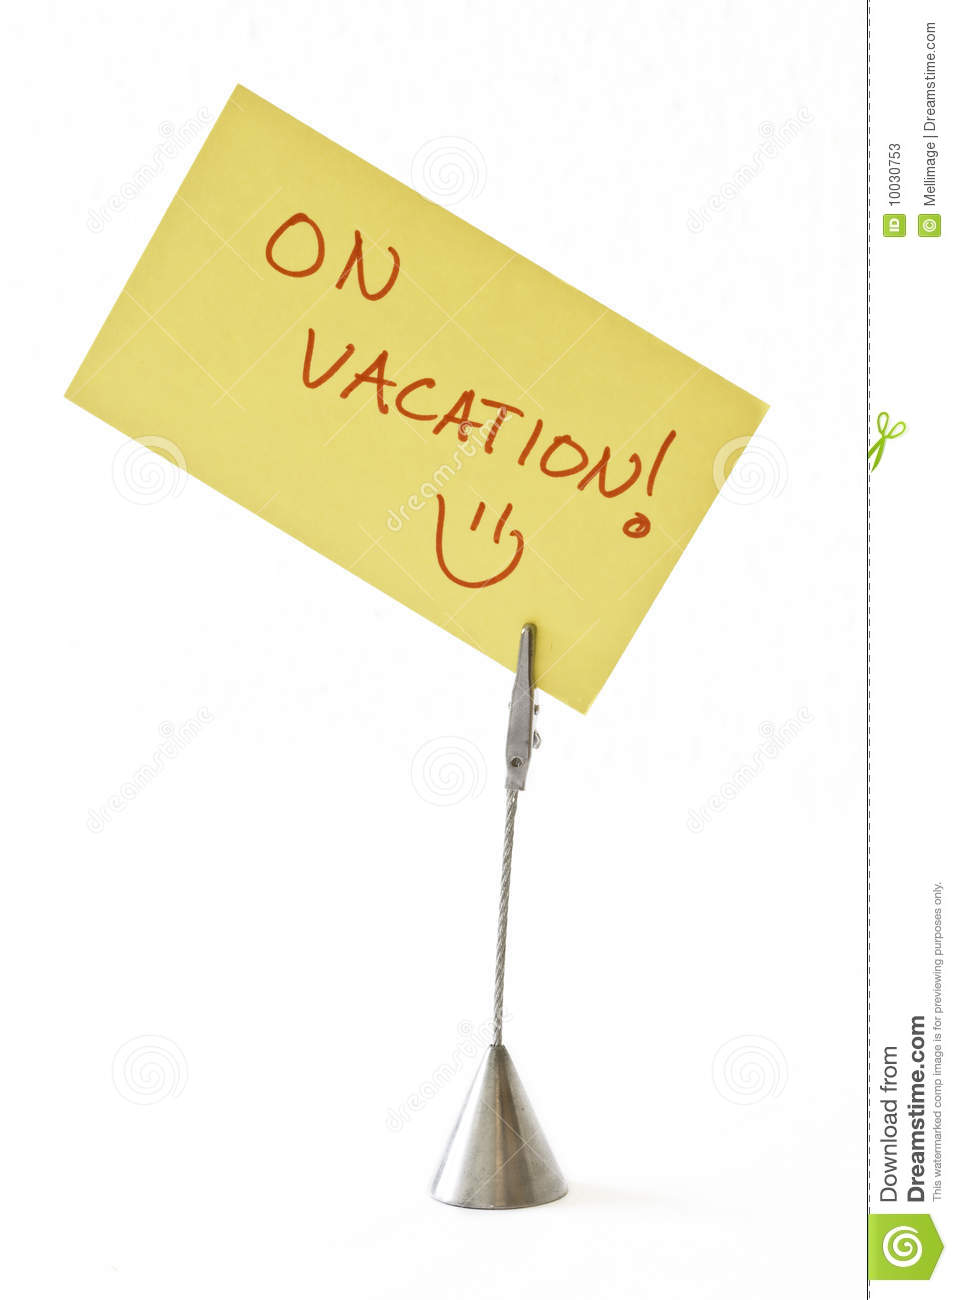 On Vacation Stock Image. Image Of Sticky, Note, Standing